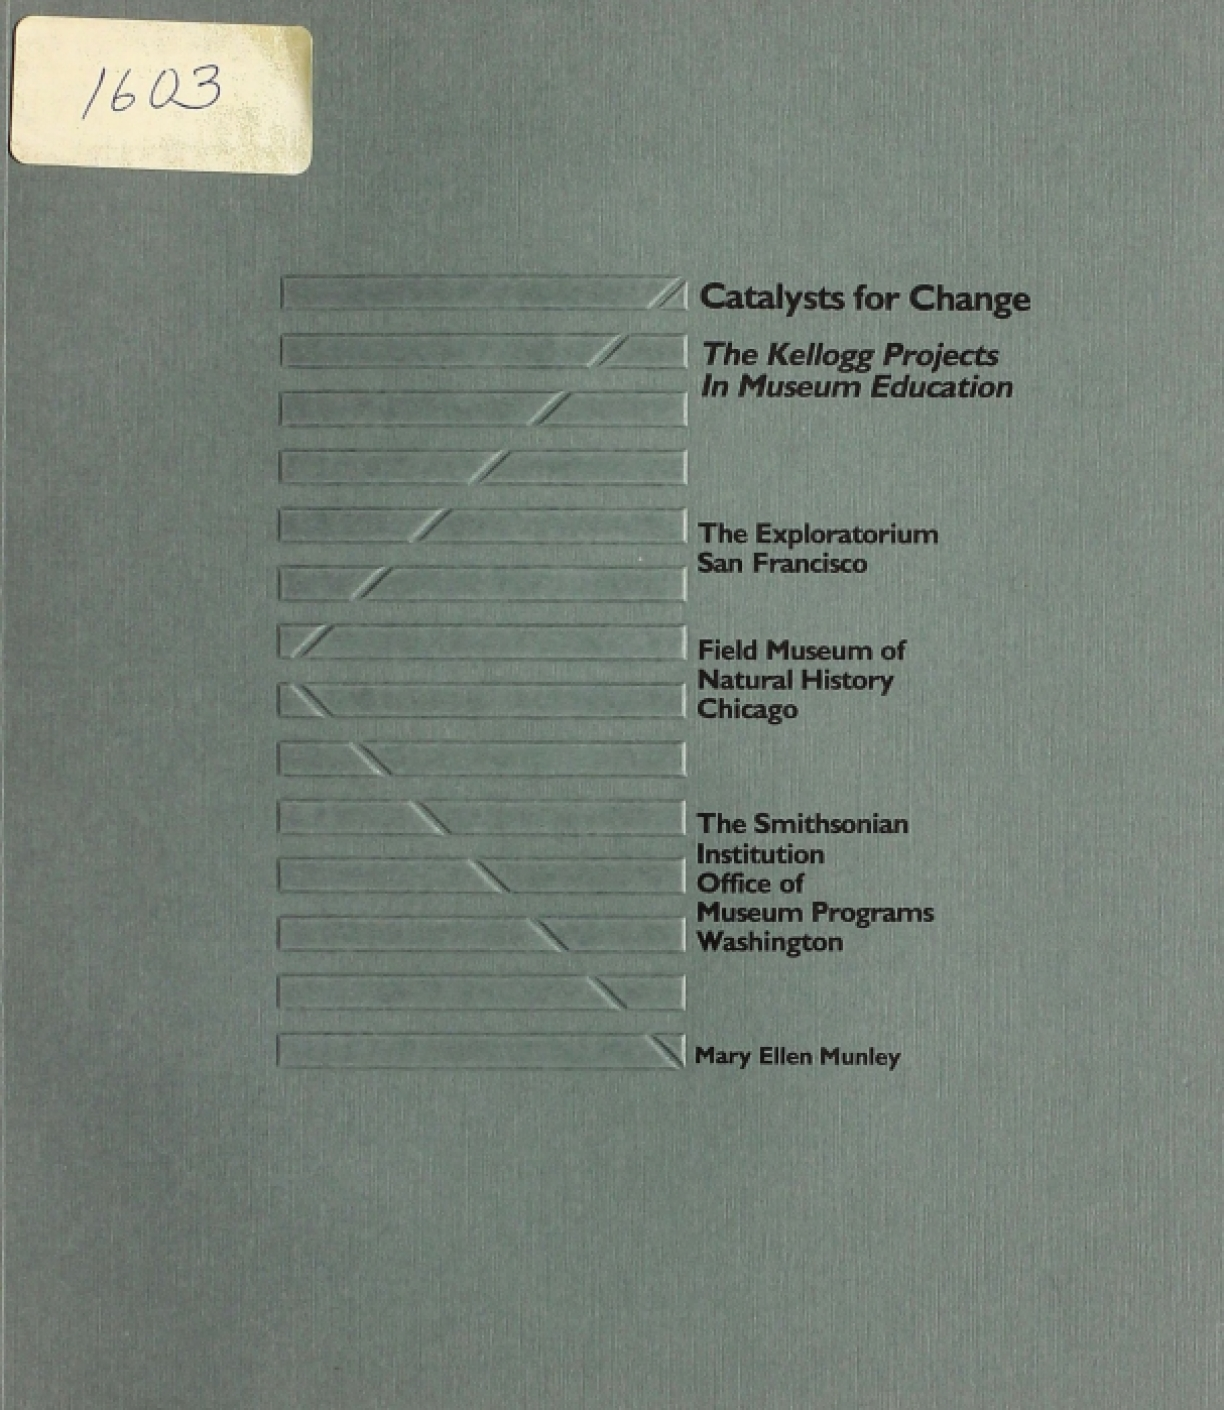 Catalysts for Change: The Kellogg Projects in Museum Education